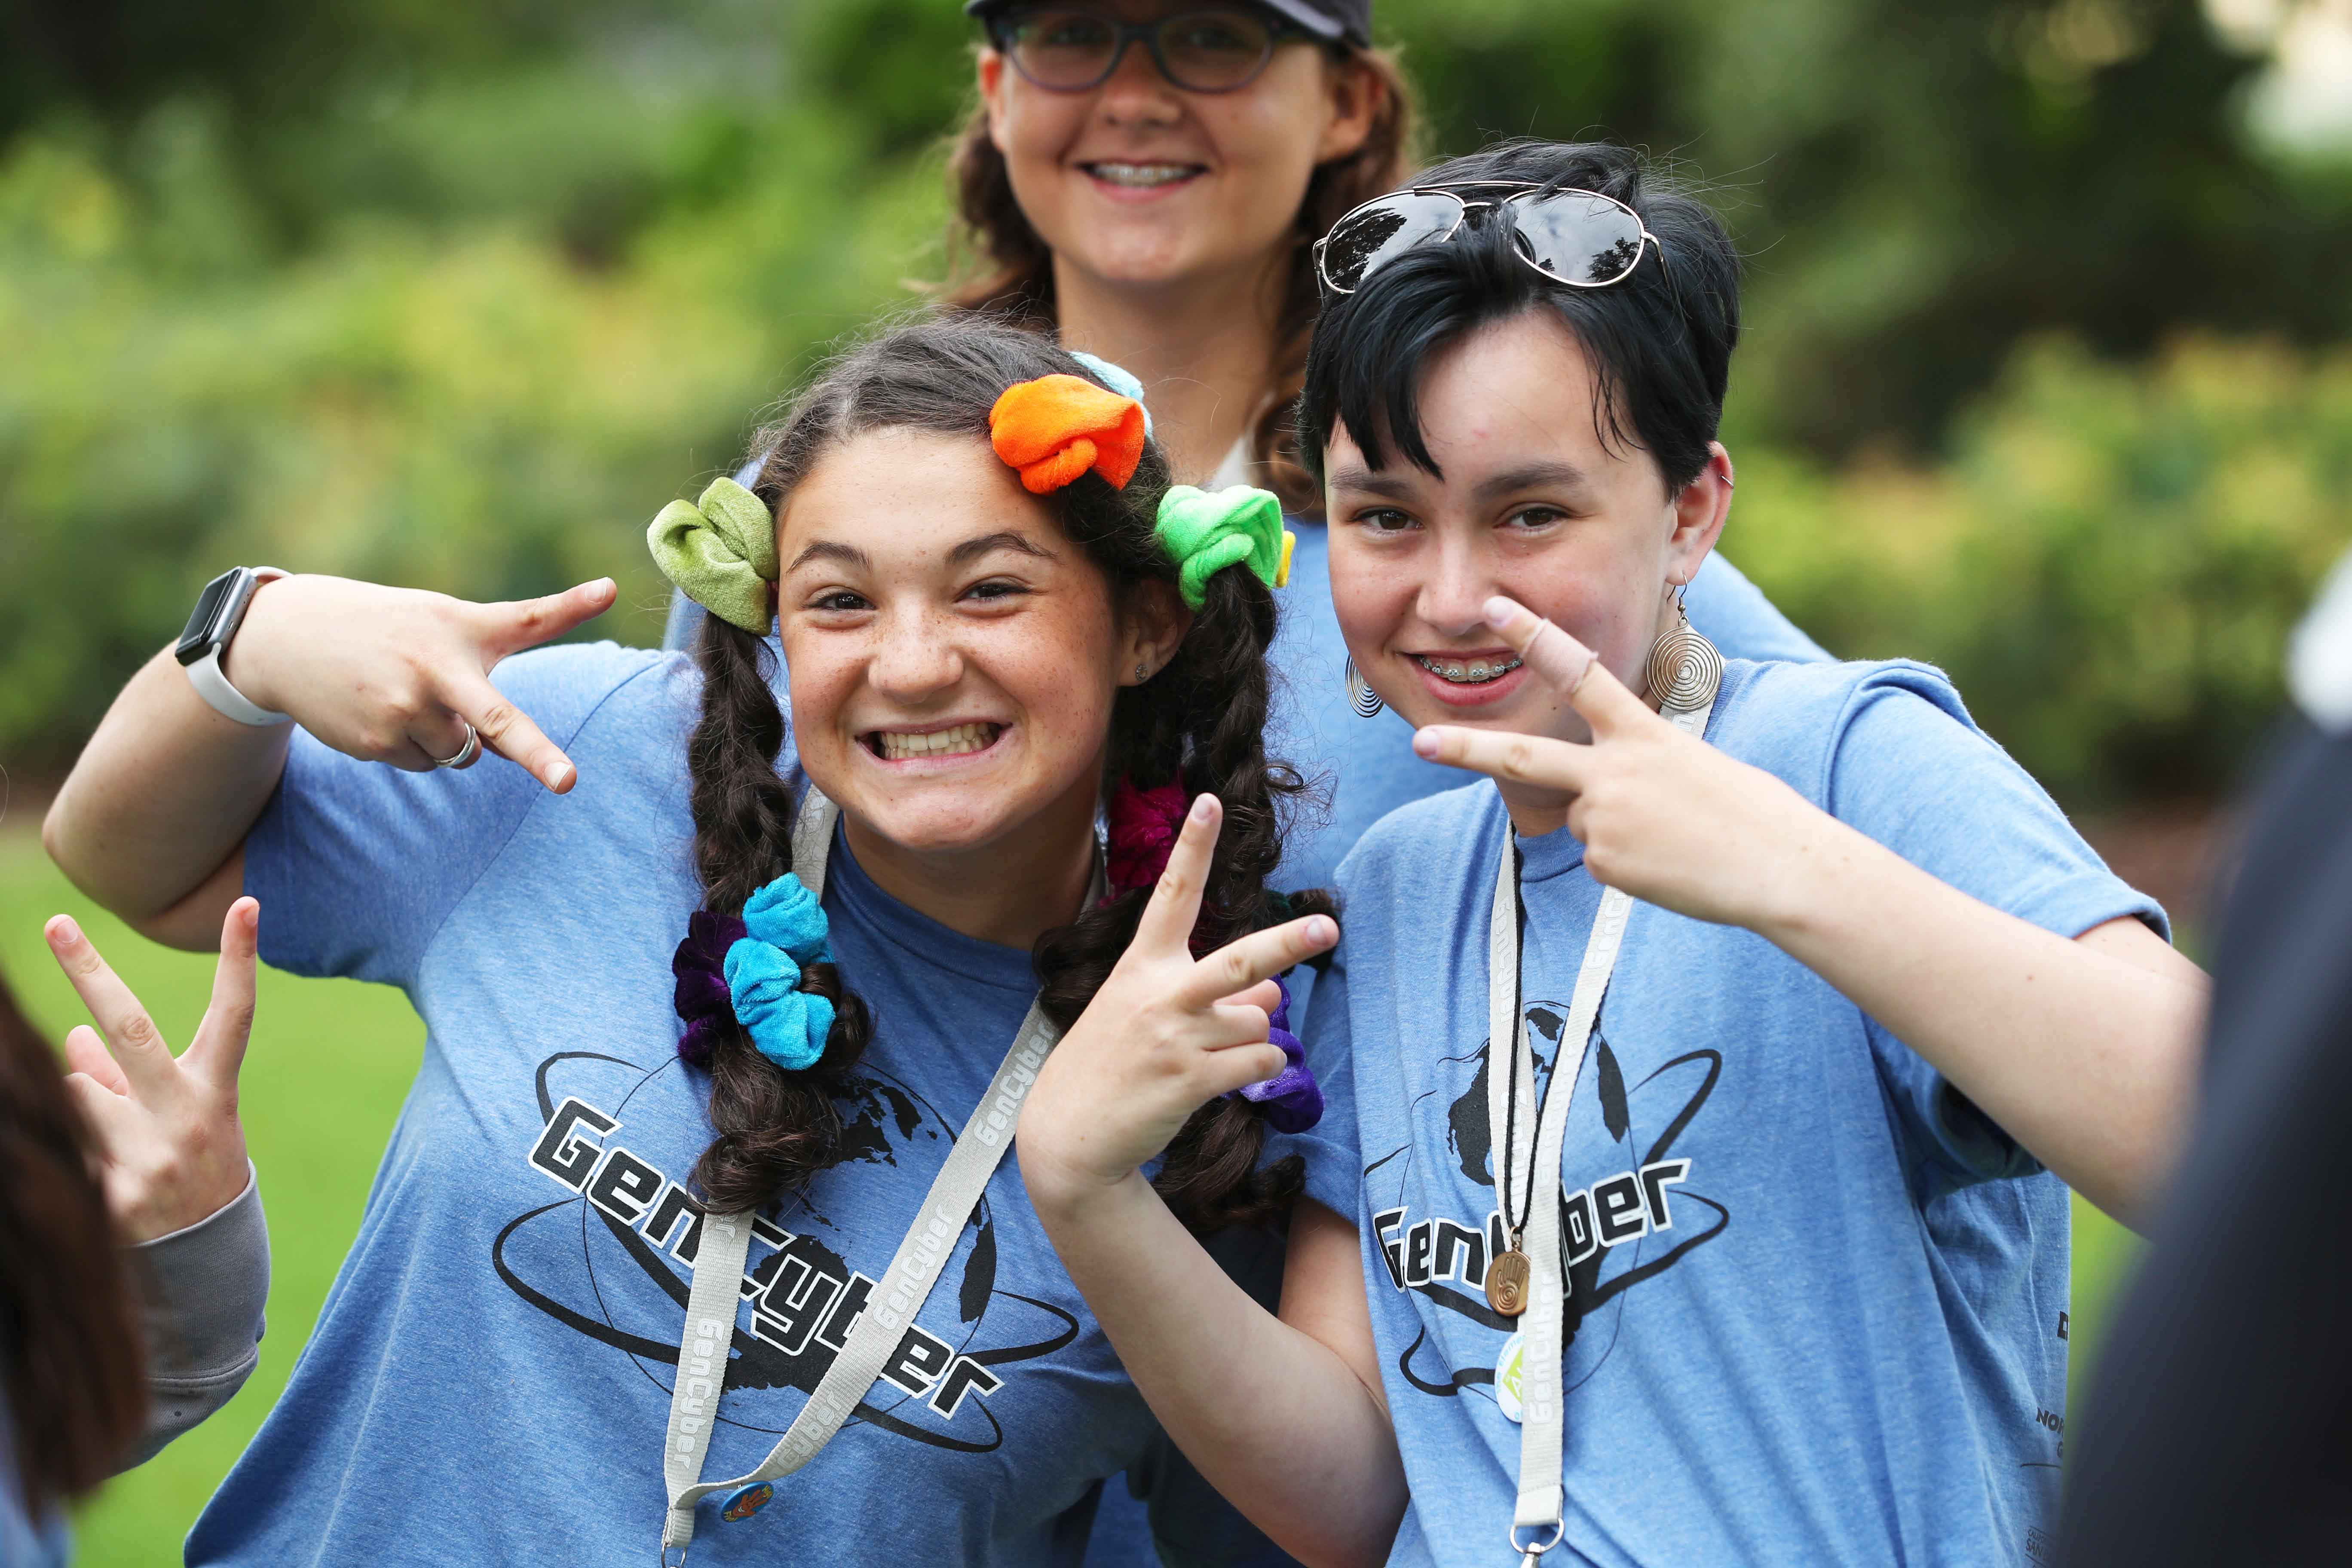 More than 200 middle school girls learn about cybersecurity at CSUSB GenCyber camp